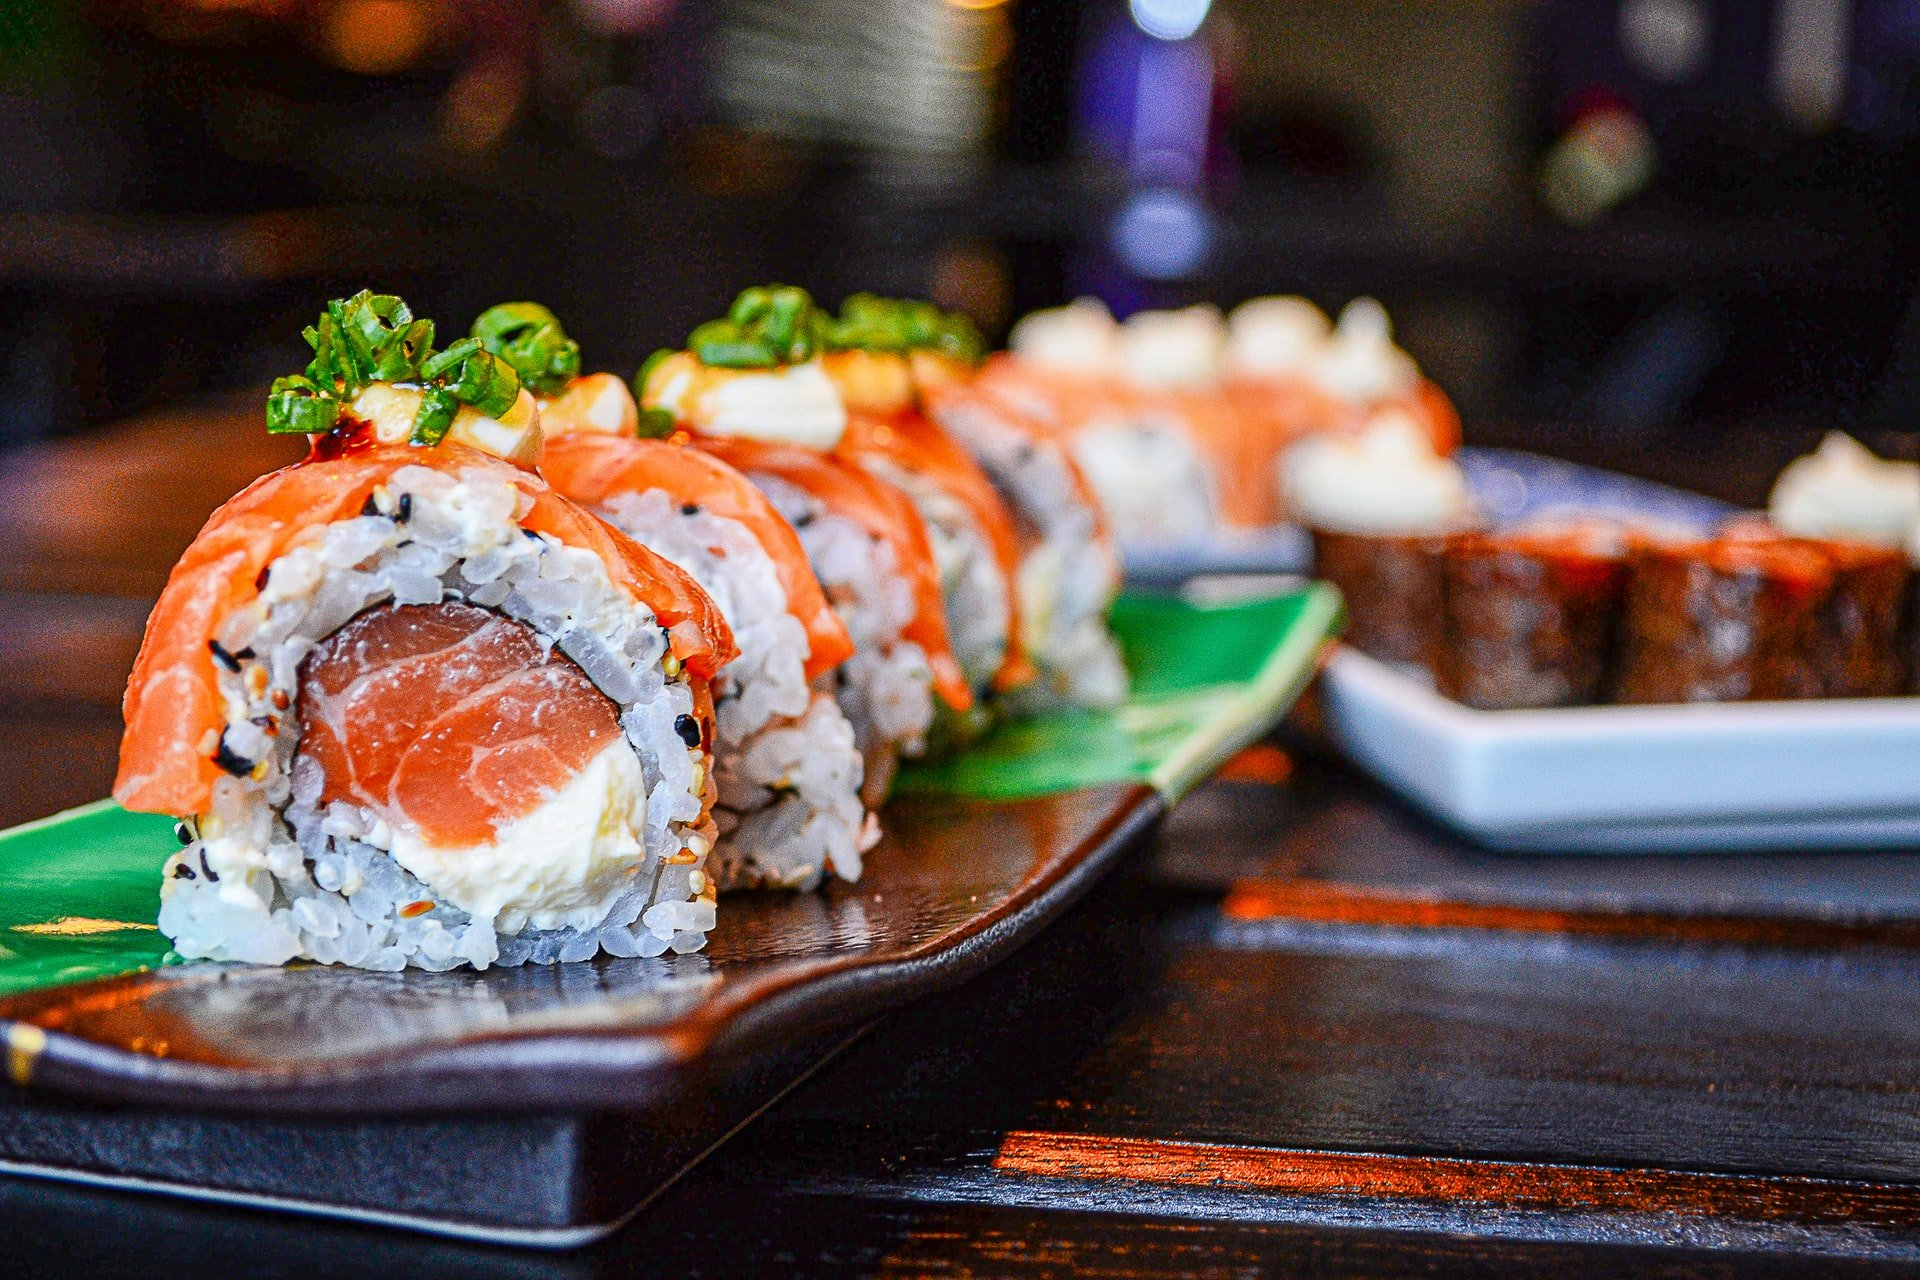 Why SushiSwap's SUSHI Has Surged 100% Higher in a Week